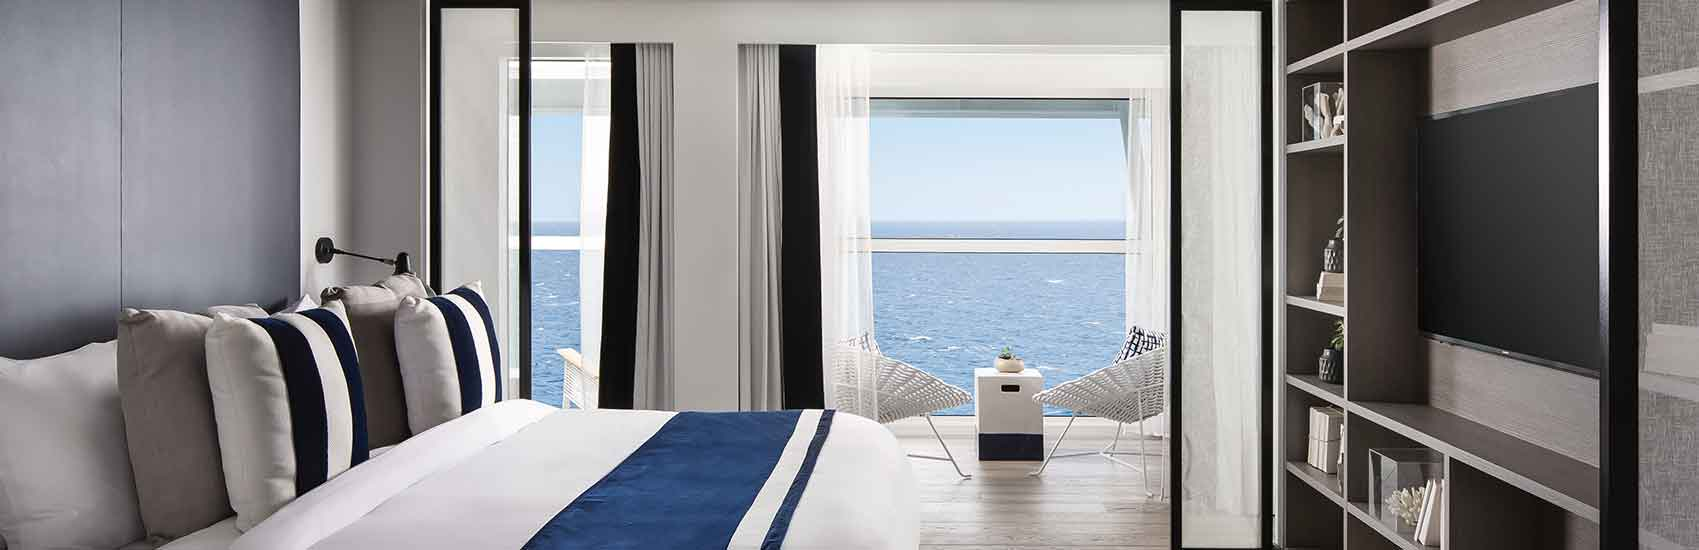 Exclusive Virtuoso Offer with Celebrity Cruises 4